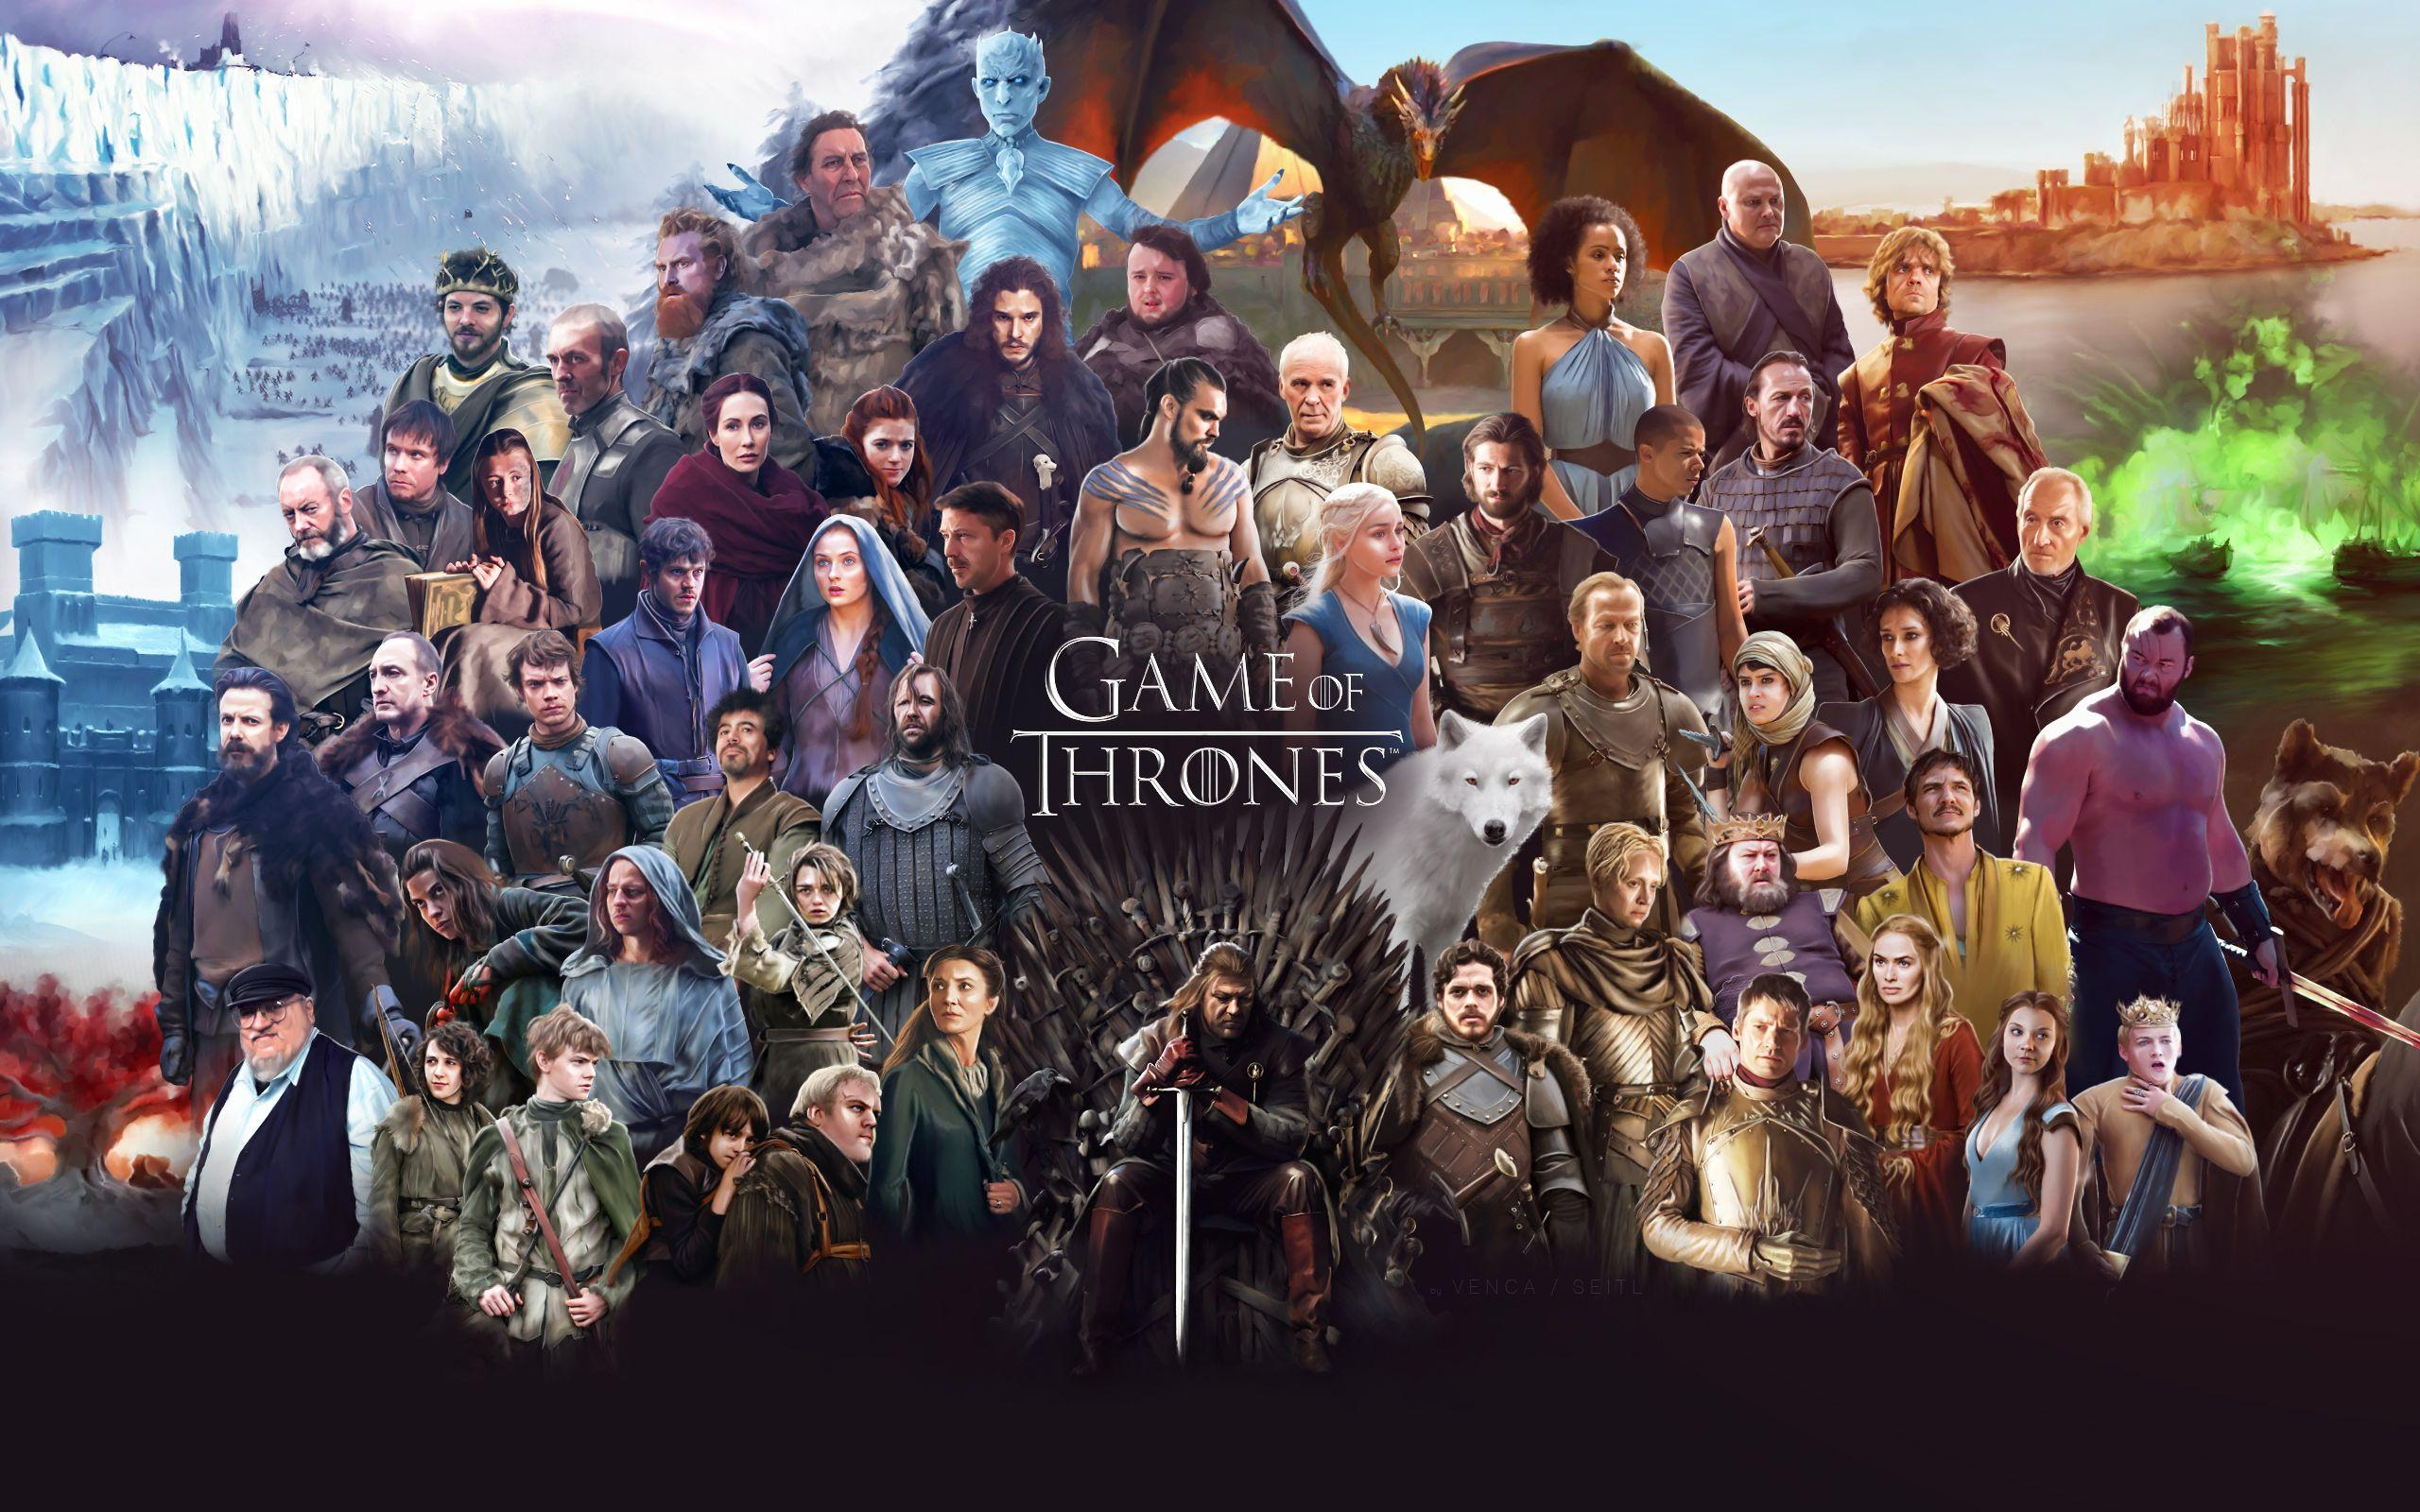 Game of Thrones Bilder Game of Thrones HD Hintergrund and backgrounds